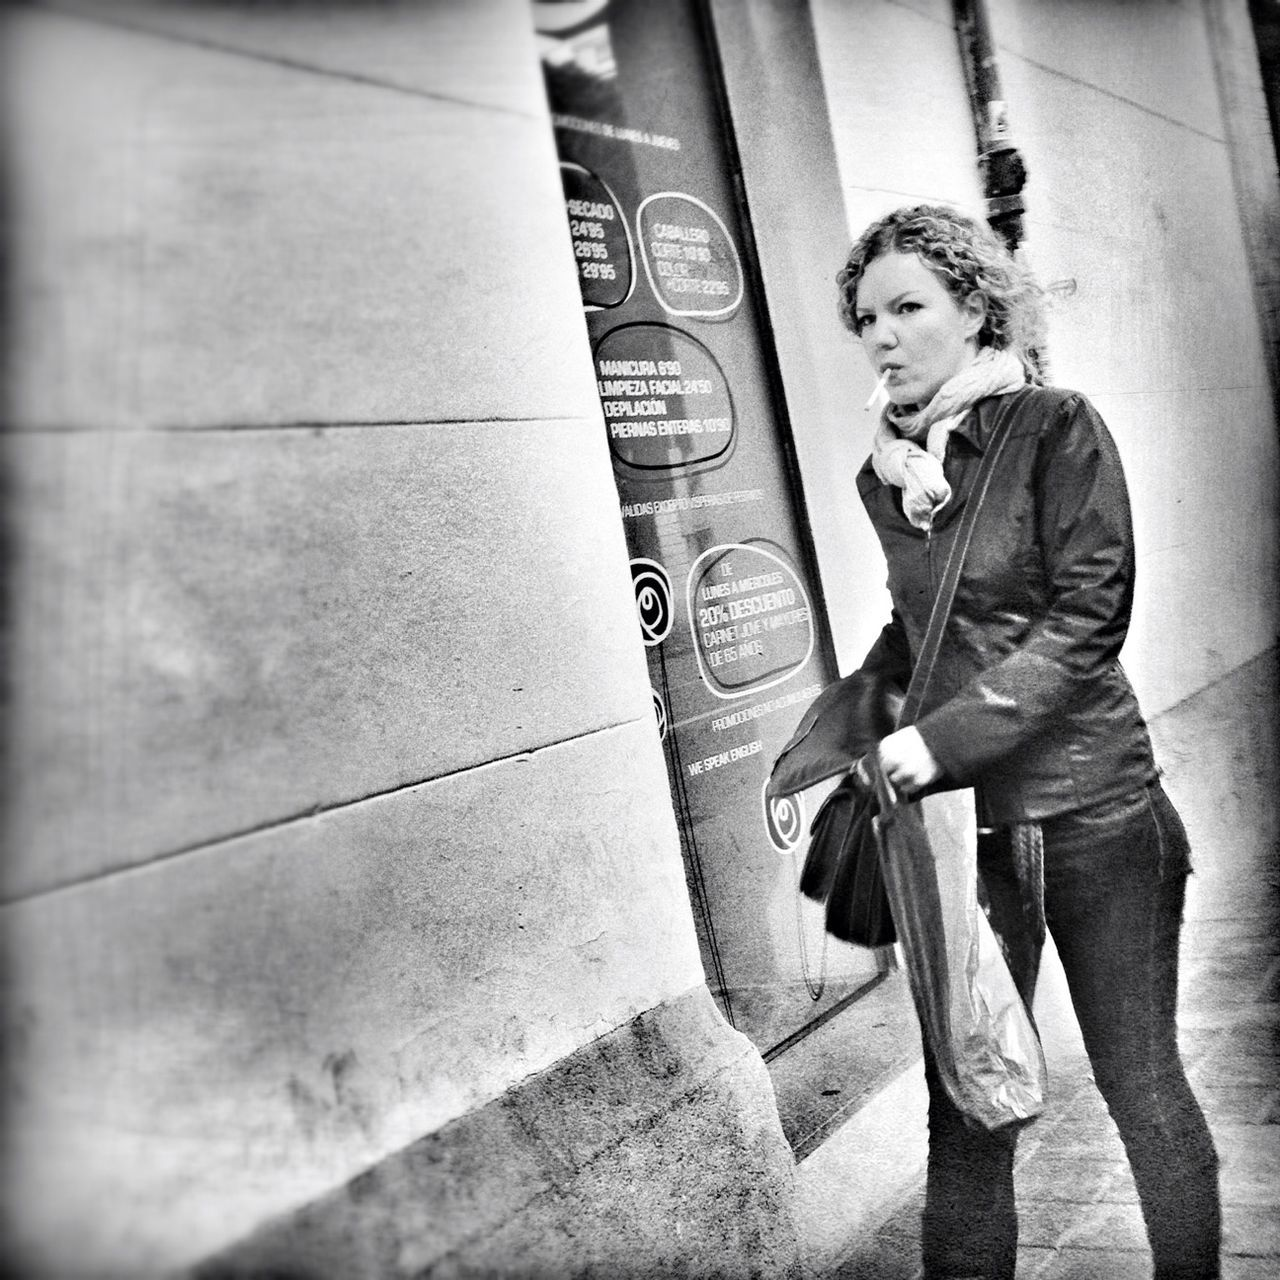 Streetphotography Beautiful Blackandwhite Street Portrait